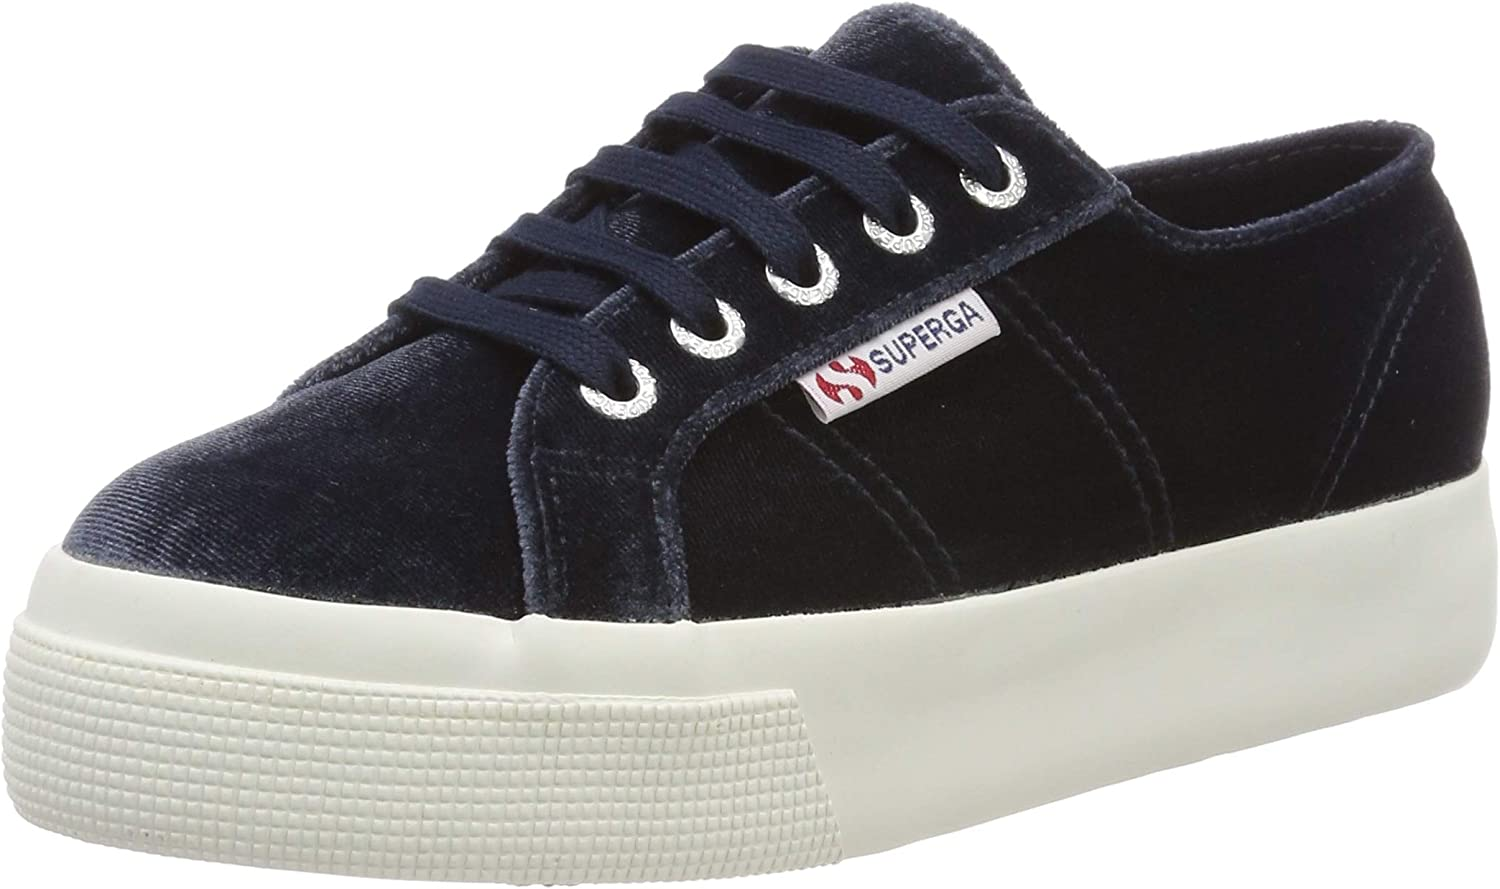 Purchase Over item handling Superga Women's Low-Top Trainers Size us:one